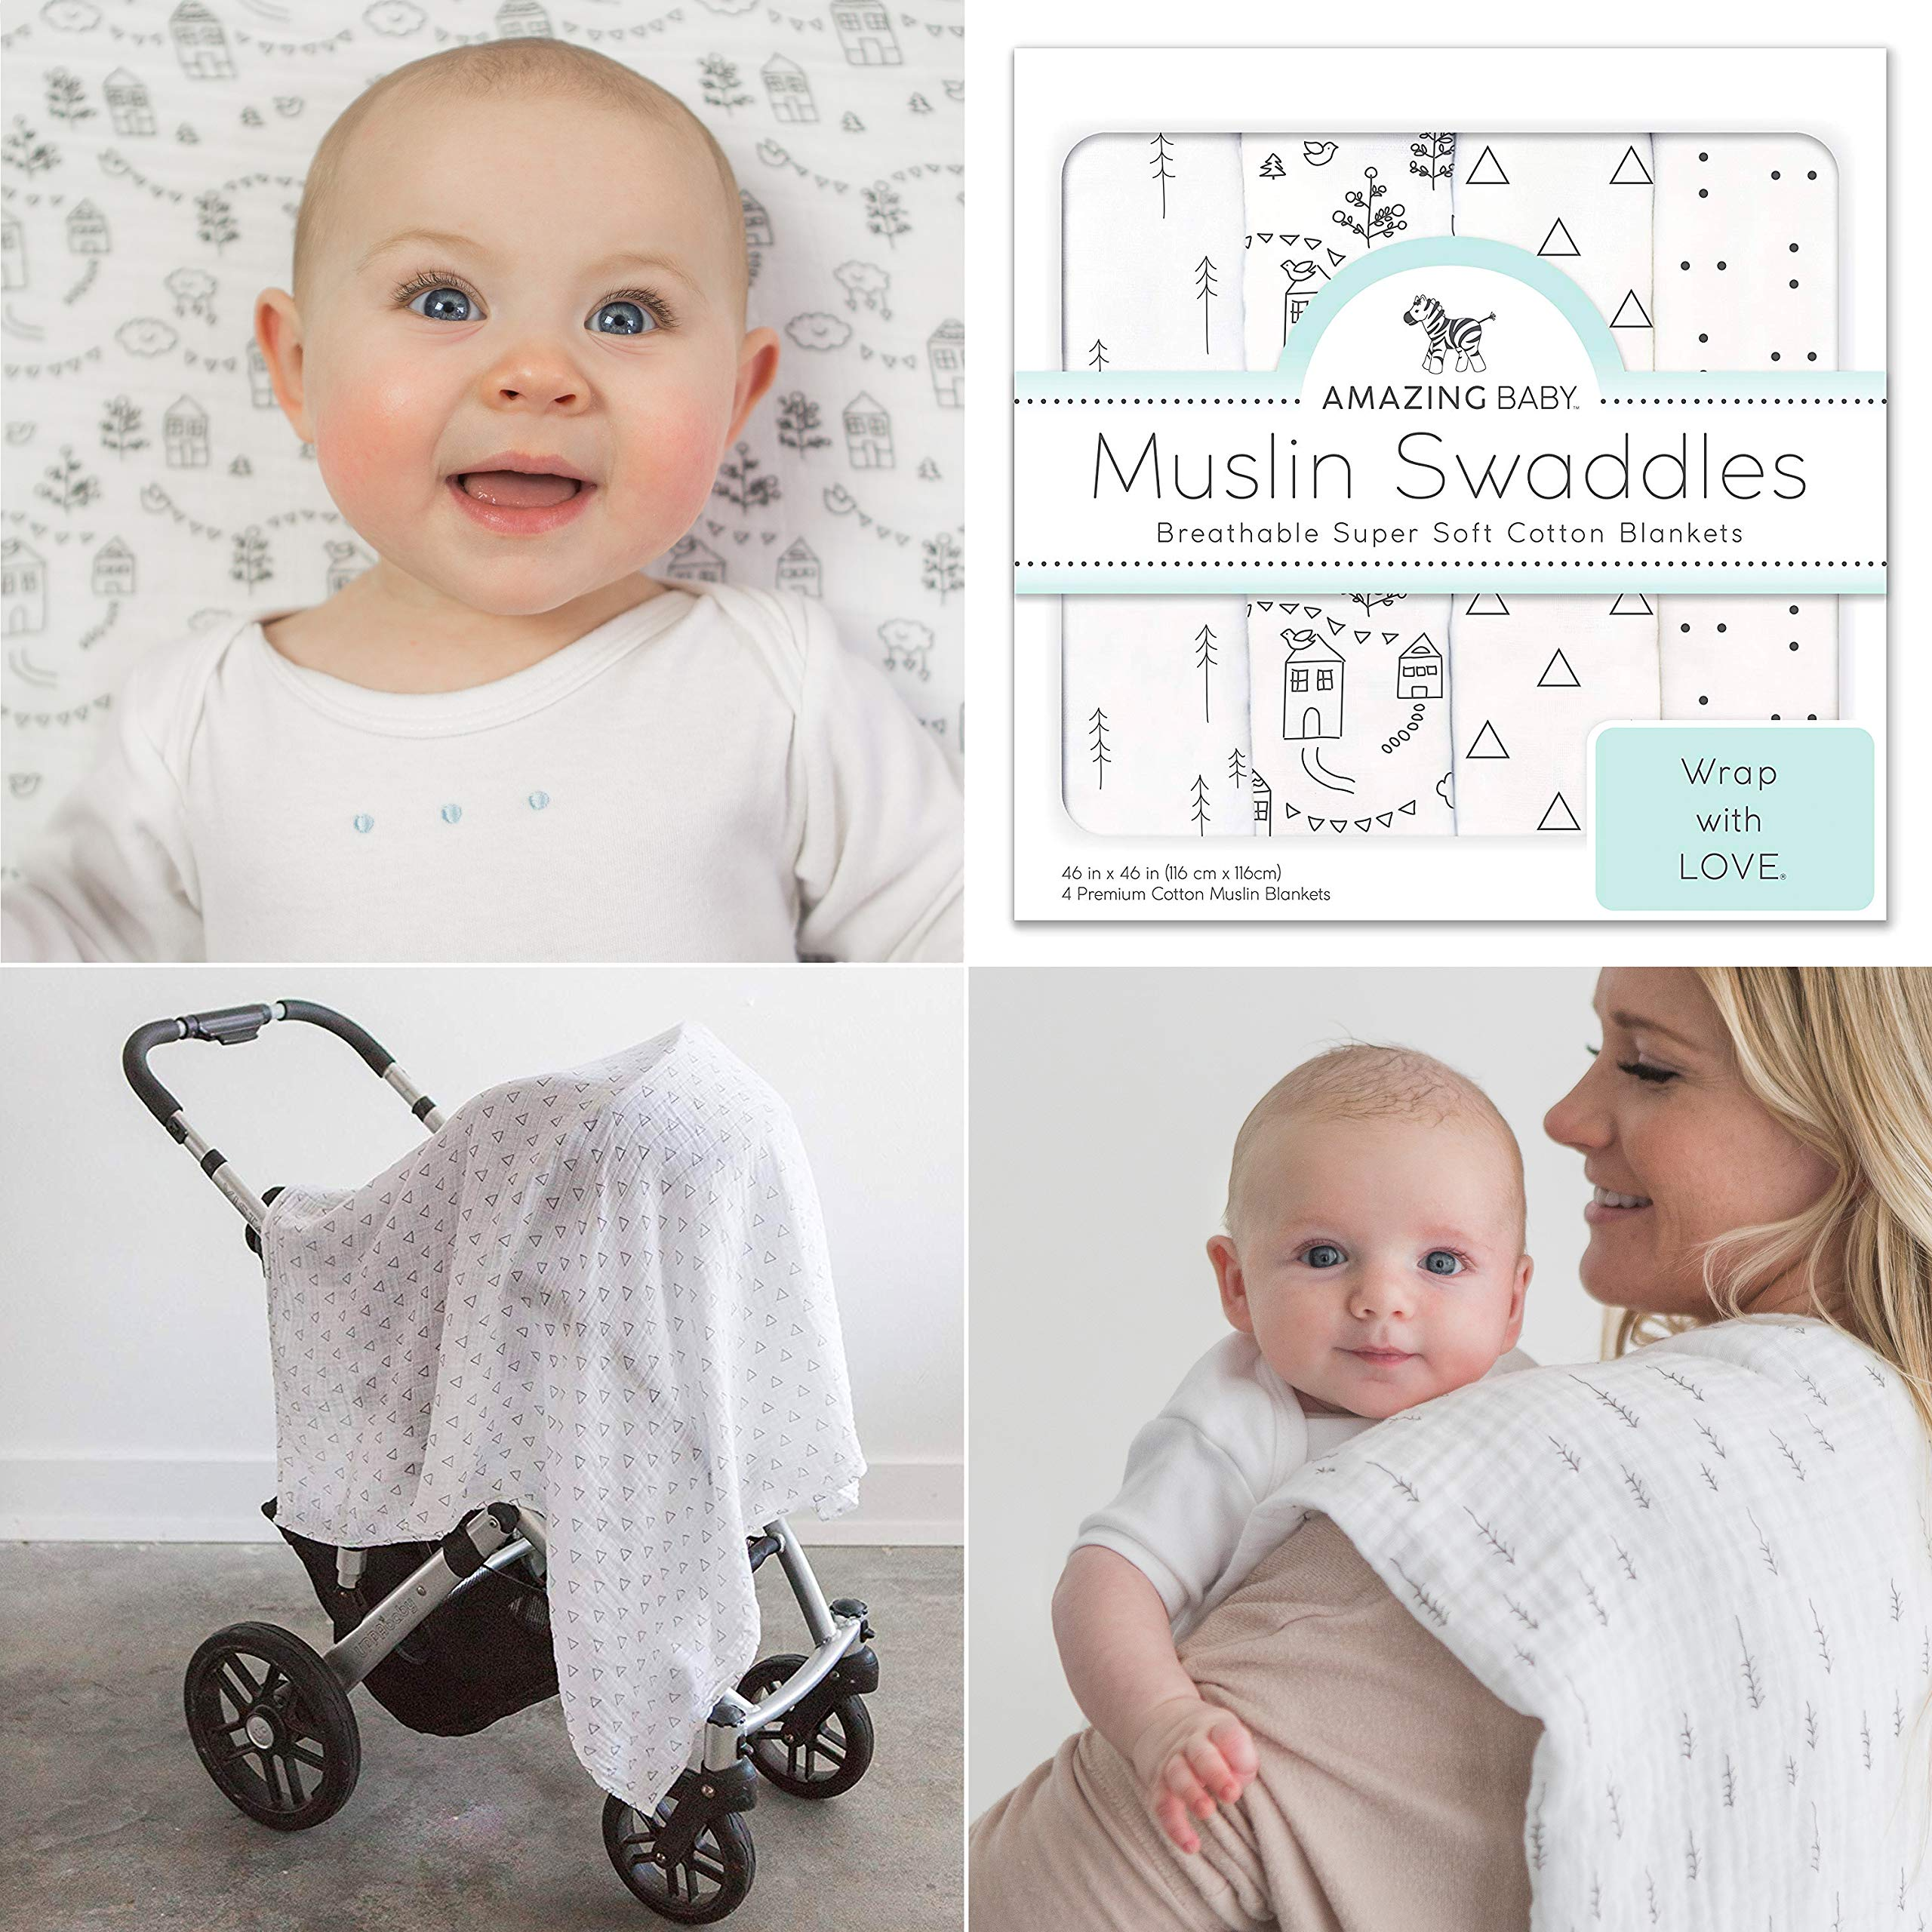 Amazing Baby Muslin Swaddle Blankets, Set of 4, Premium Cotton, Little Village and Trees, Black by Amazing Baby